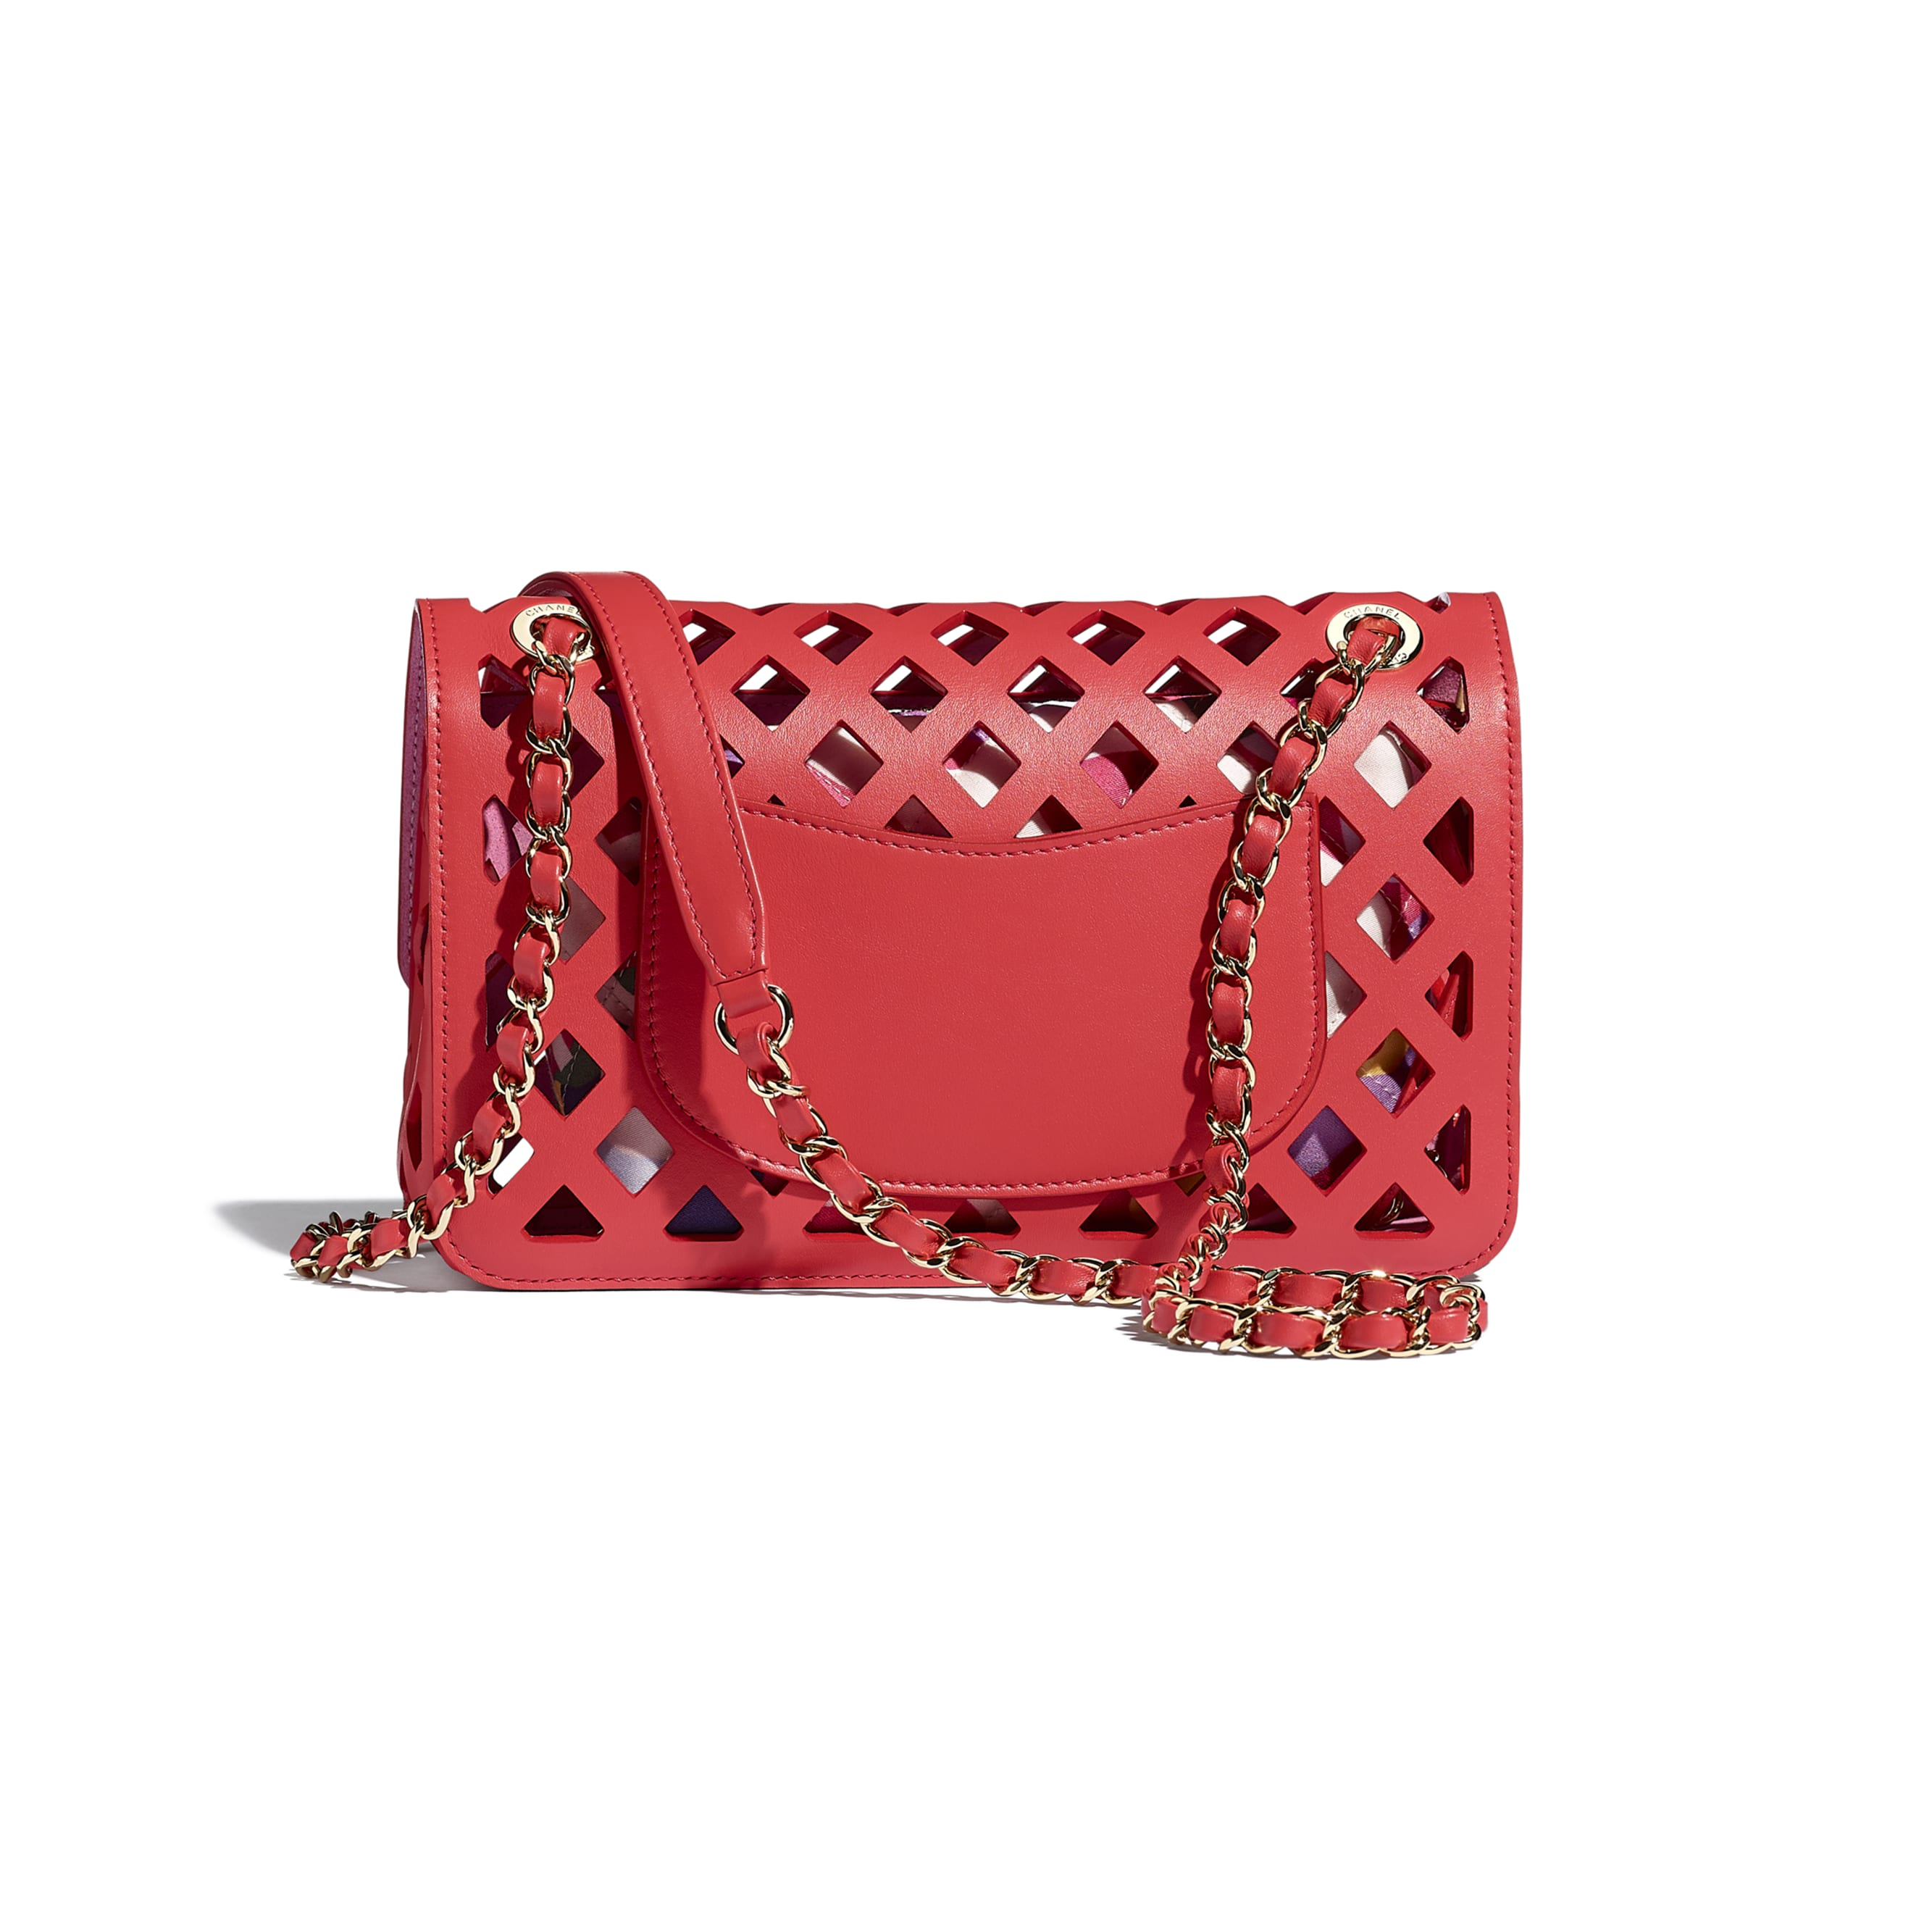 Flap Bag - Red - Perforated Calfskin, Printed Fabric & Gold-Tone Metal - CHANEL - Alternative view - see standard sized version